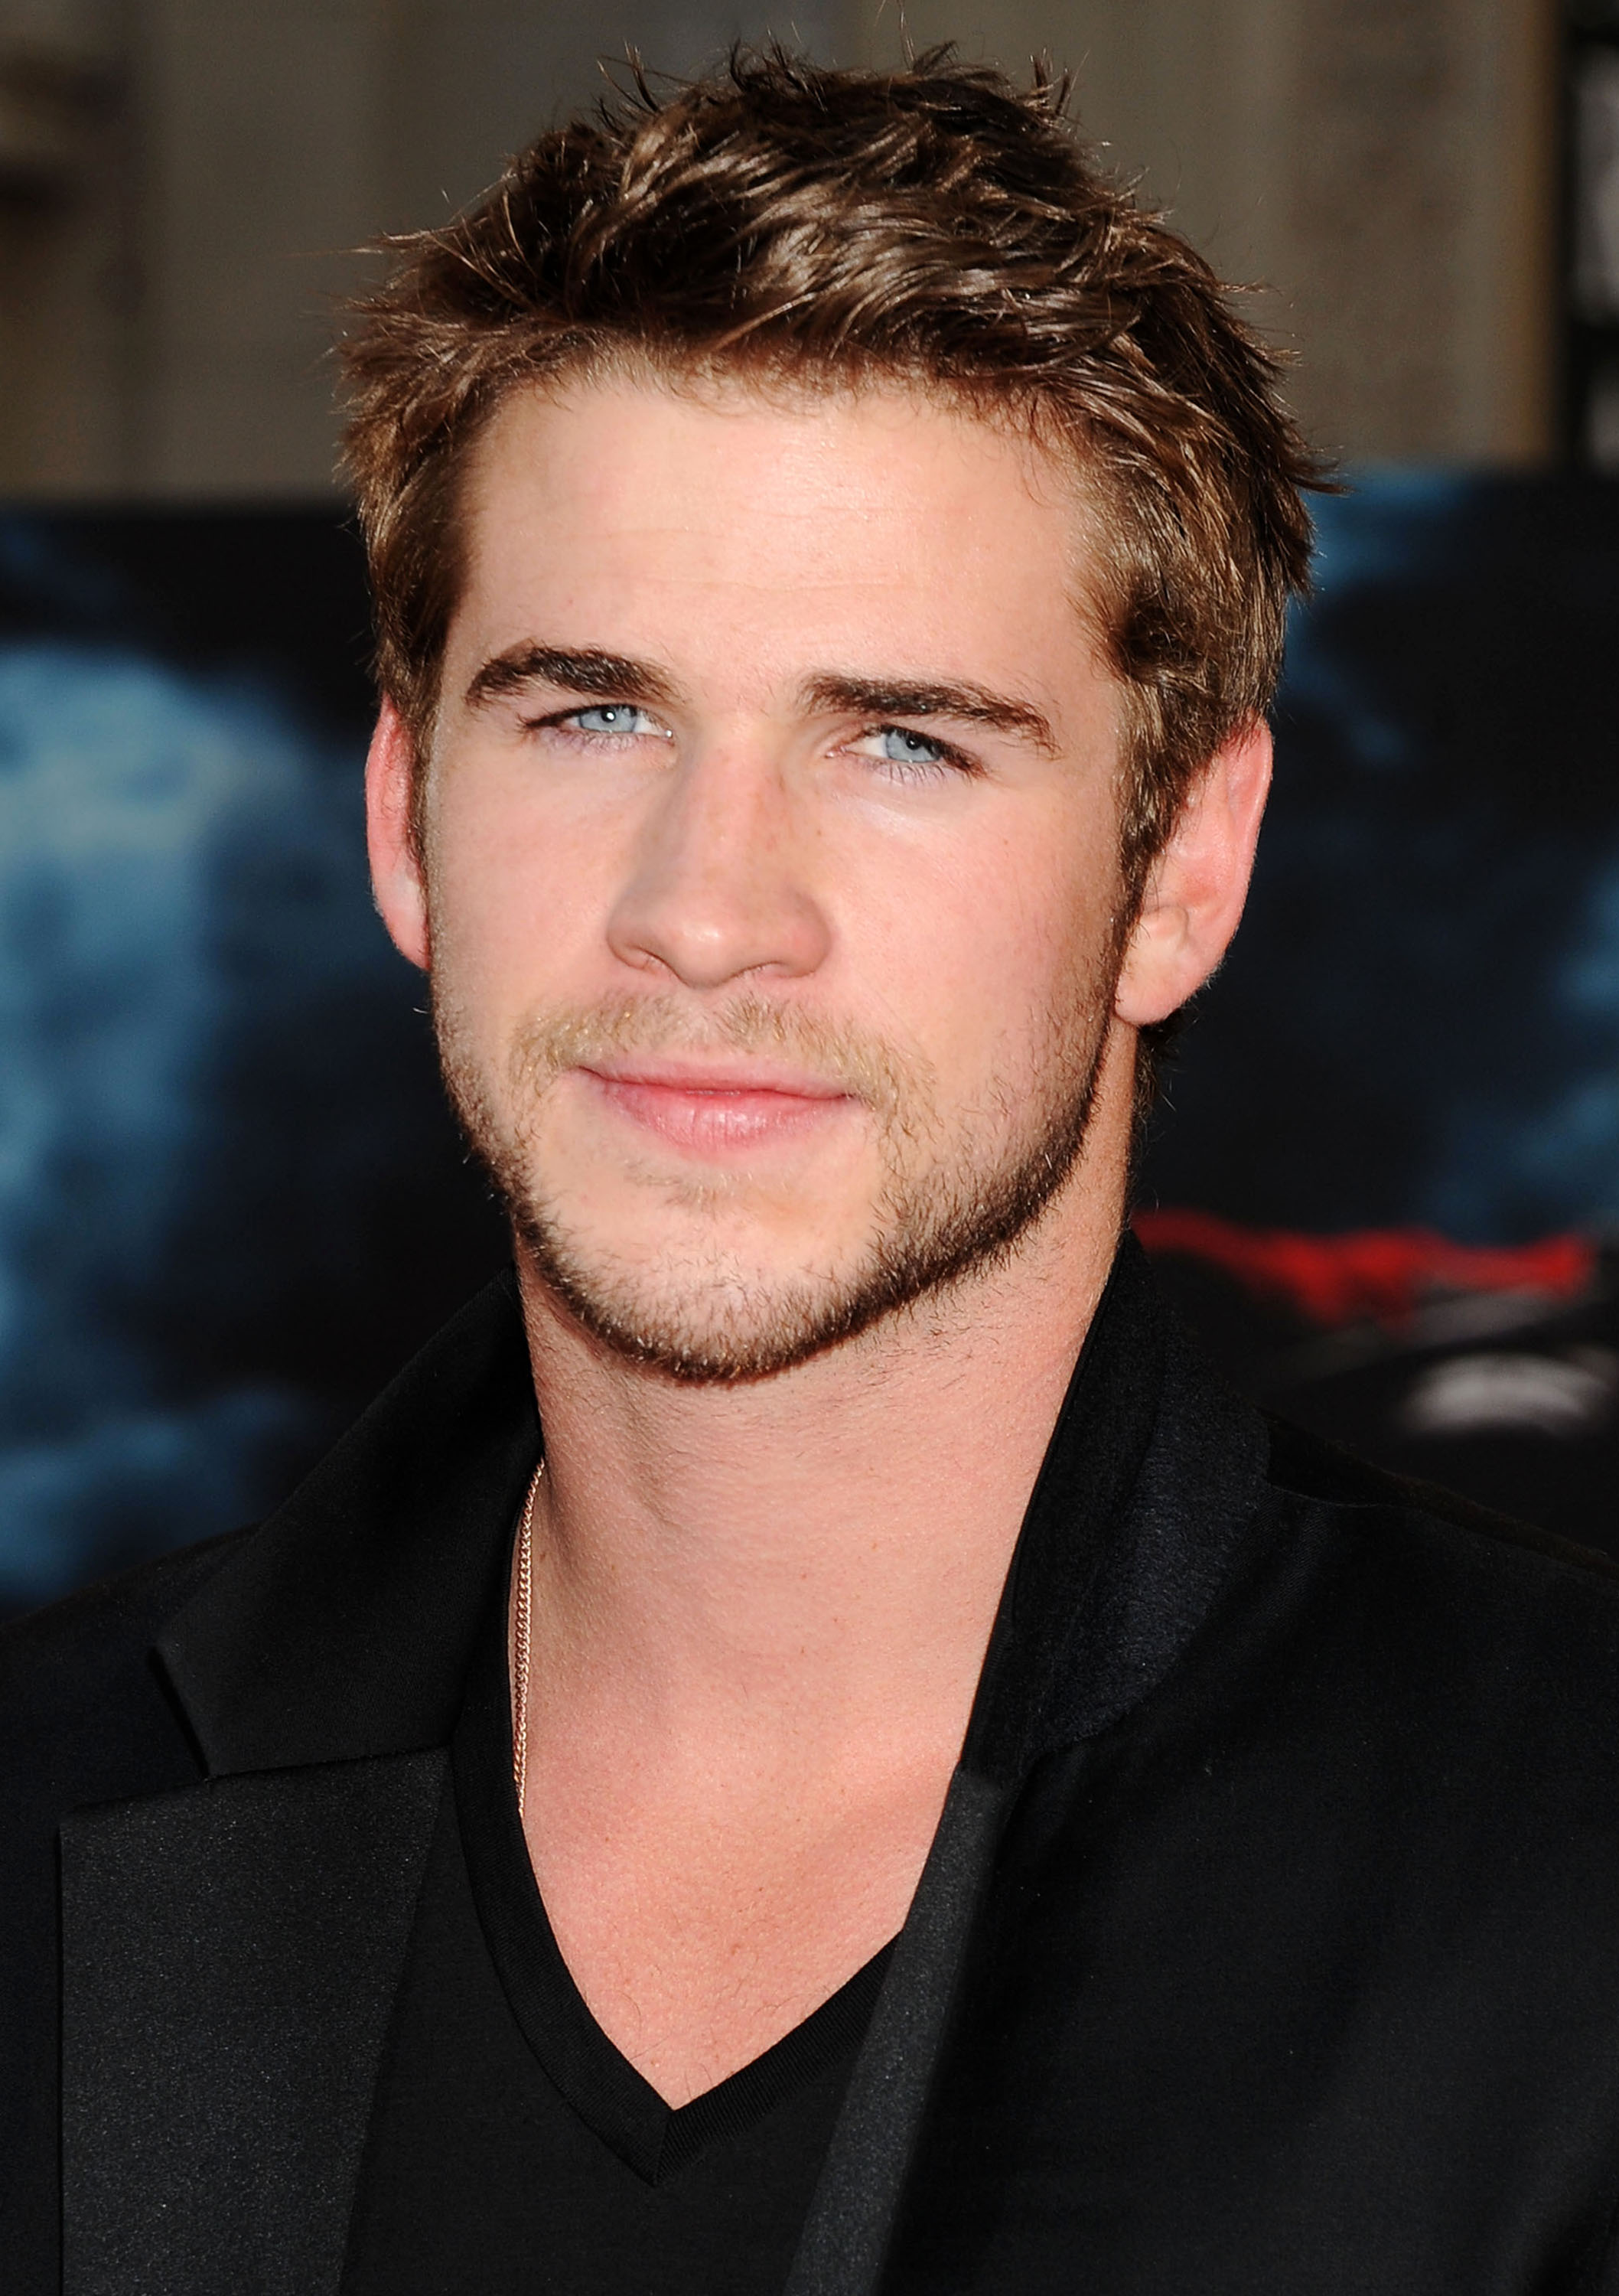 Ki Liam hemsworth most 2014-ben?